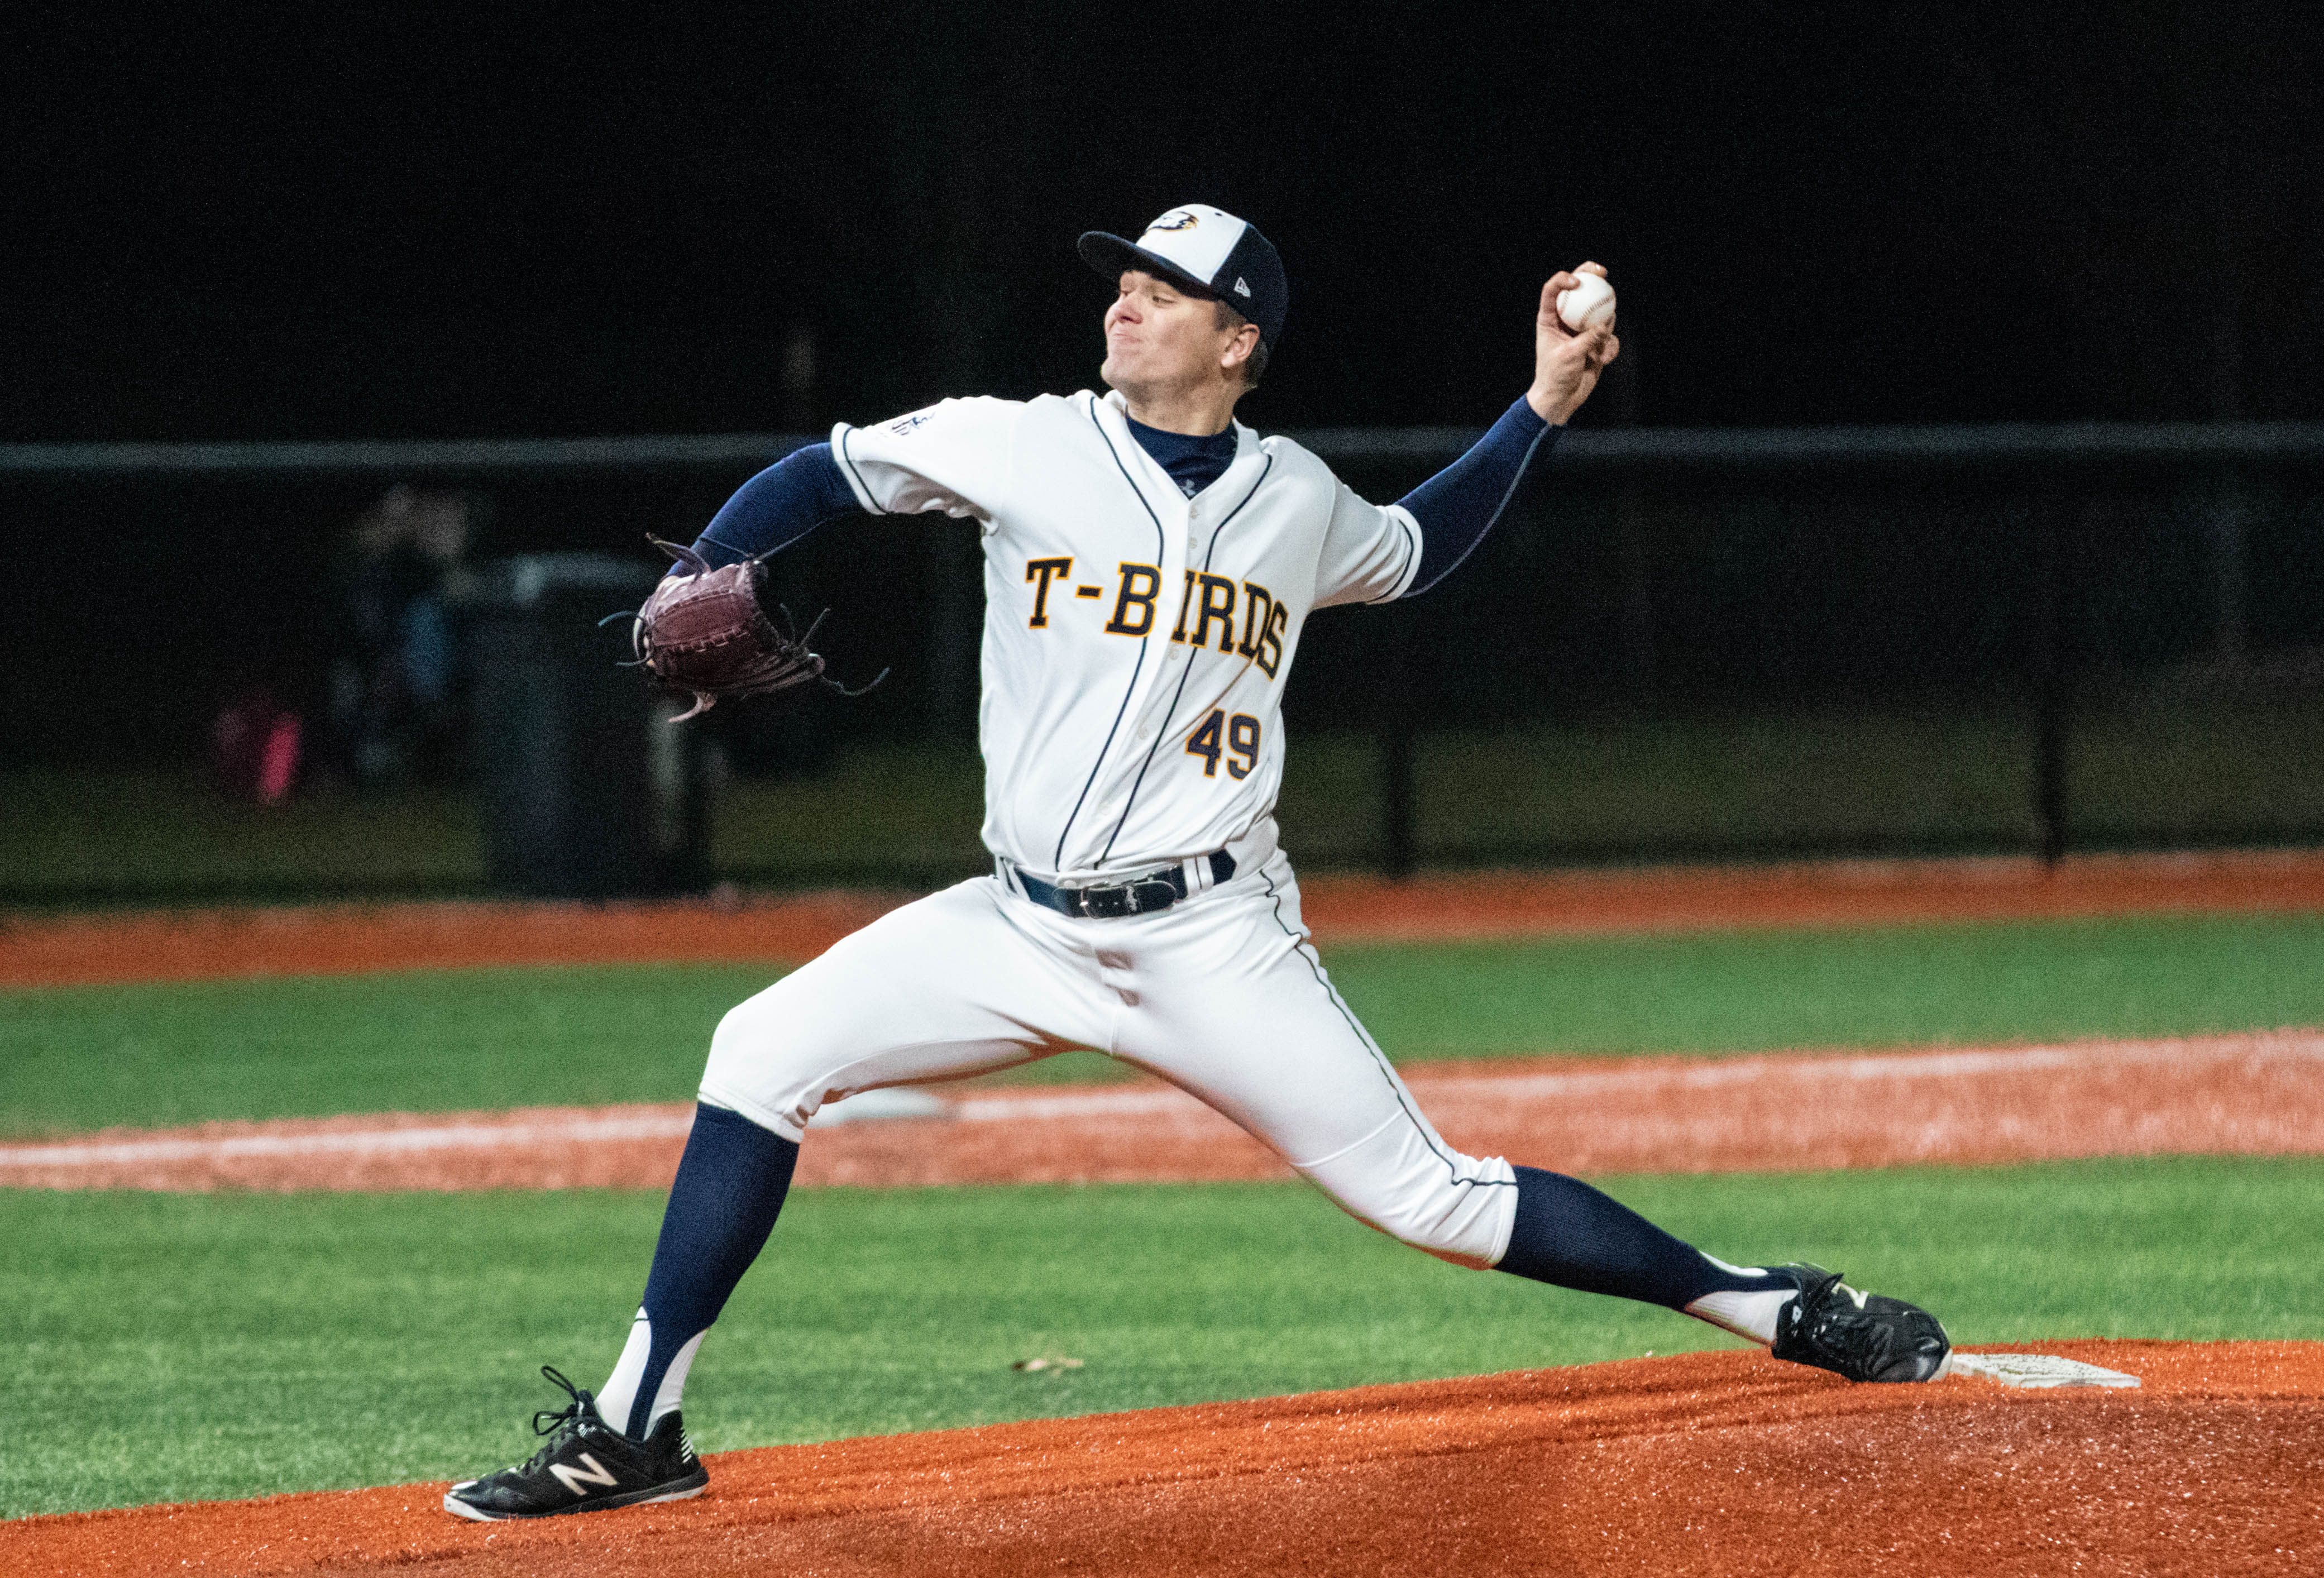 Pitcher Niall Windeler threw a no-hitter against the Oregon Tech Owls.